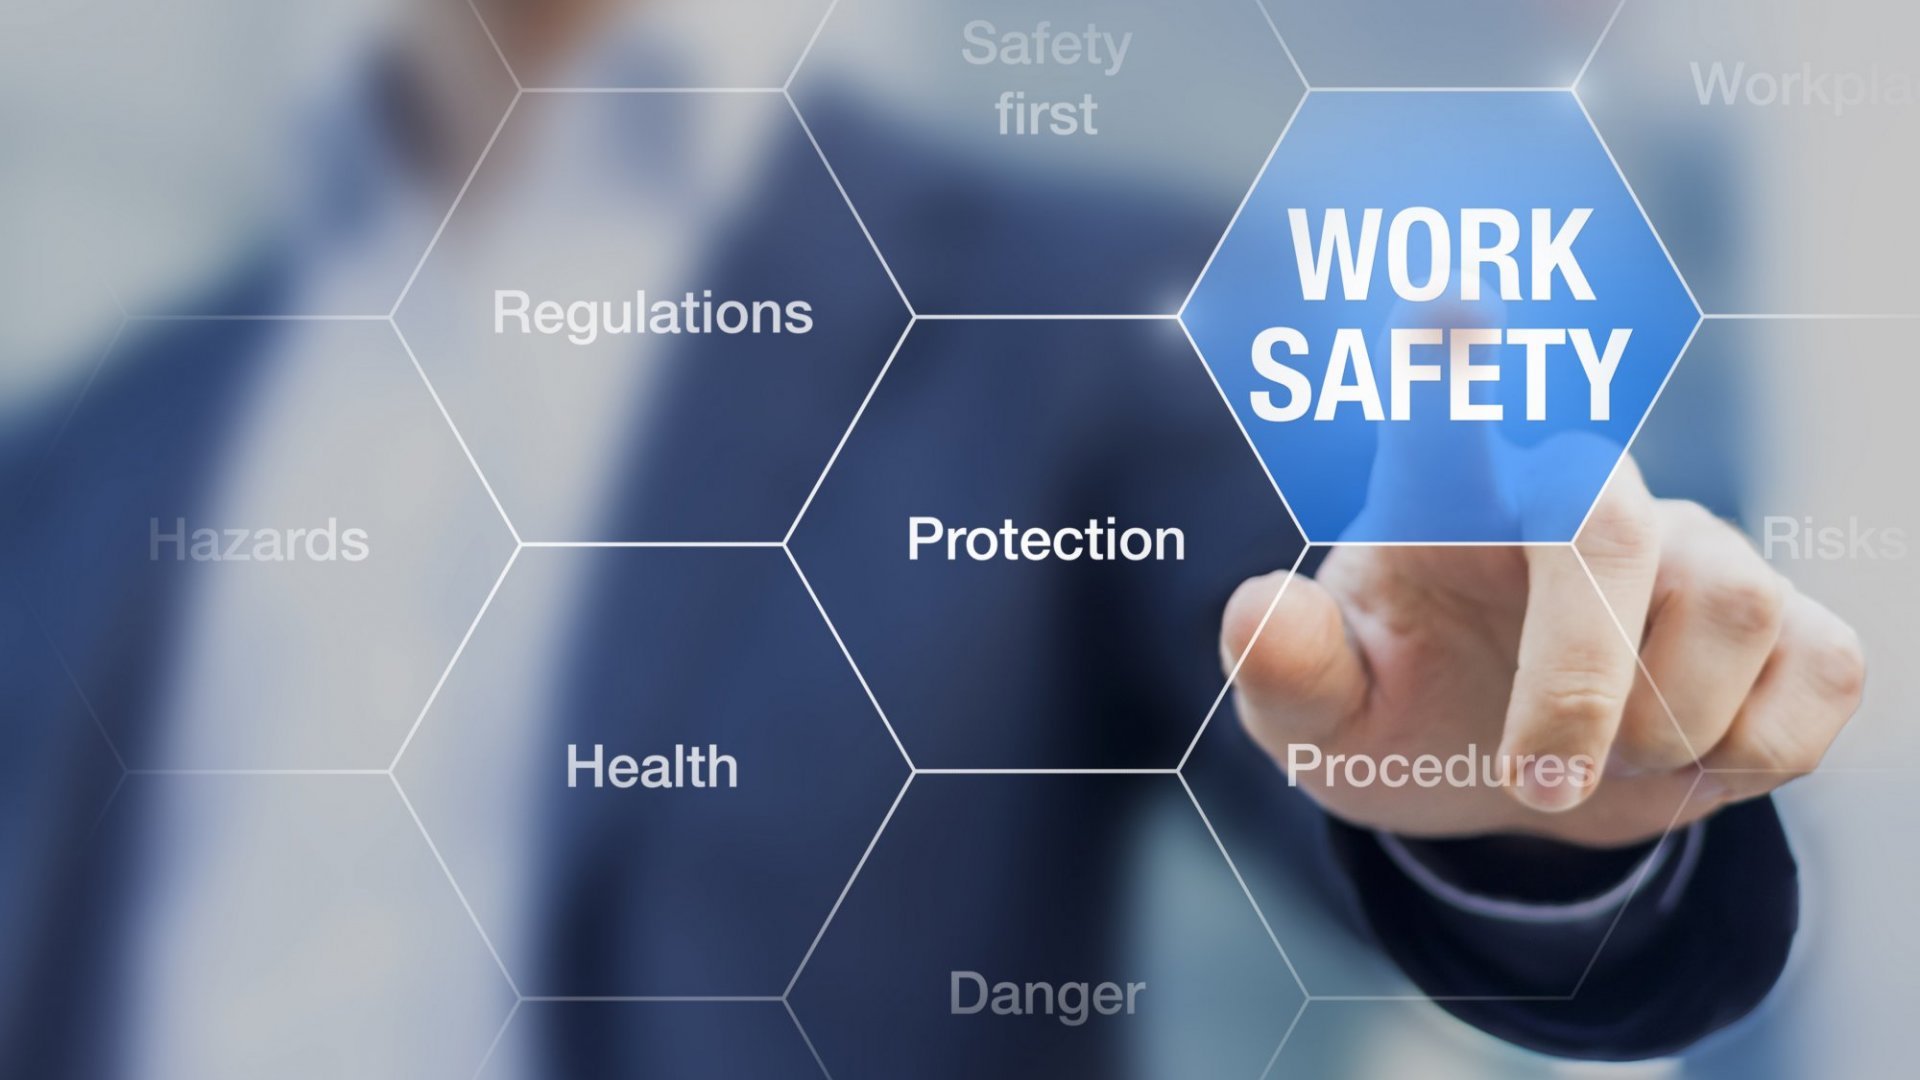 SafetyTech is the Next Big Blue Ocean Market Space